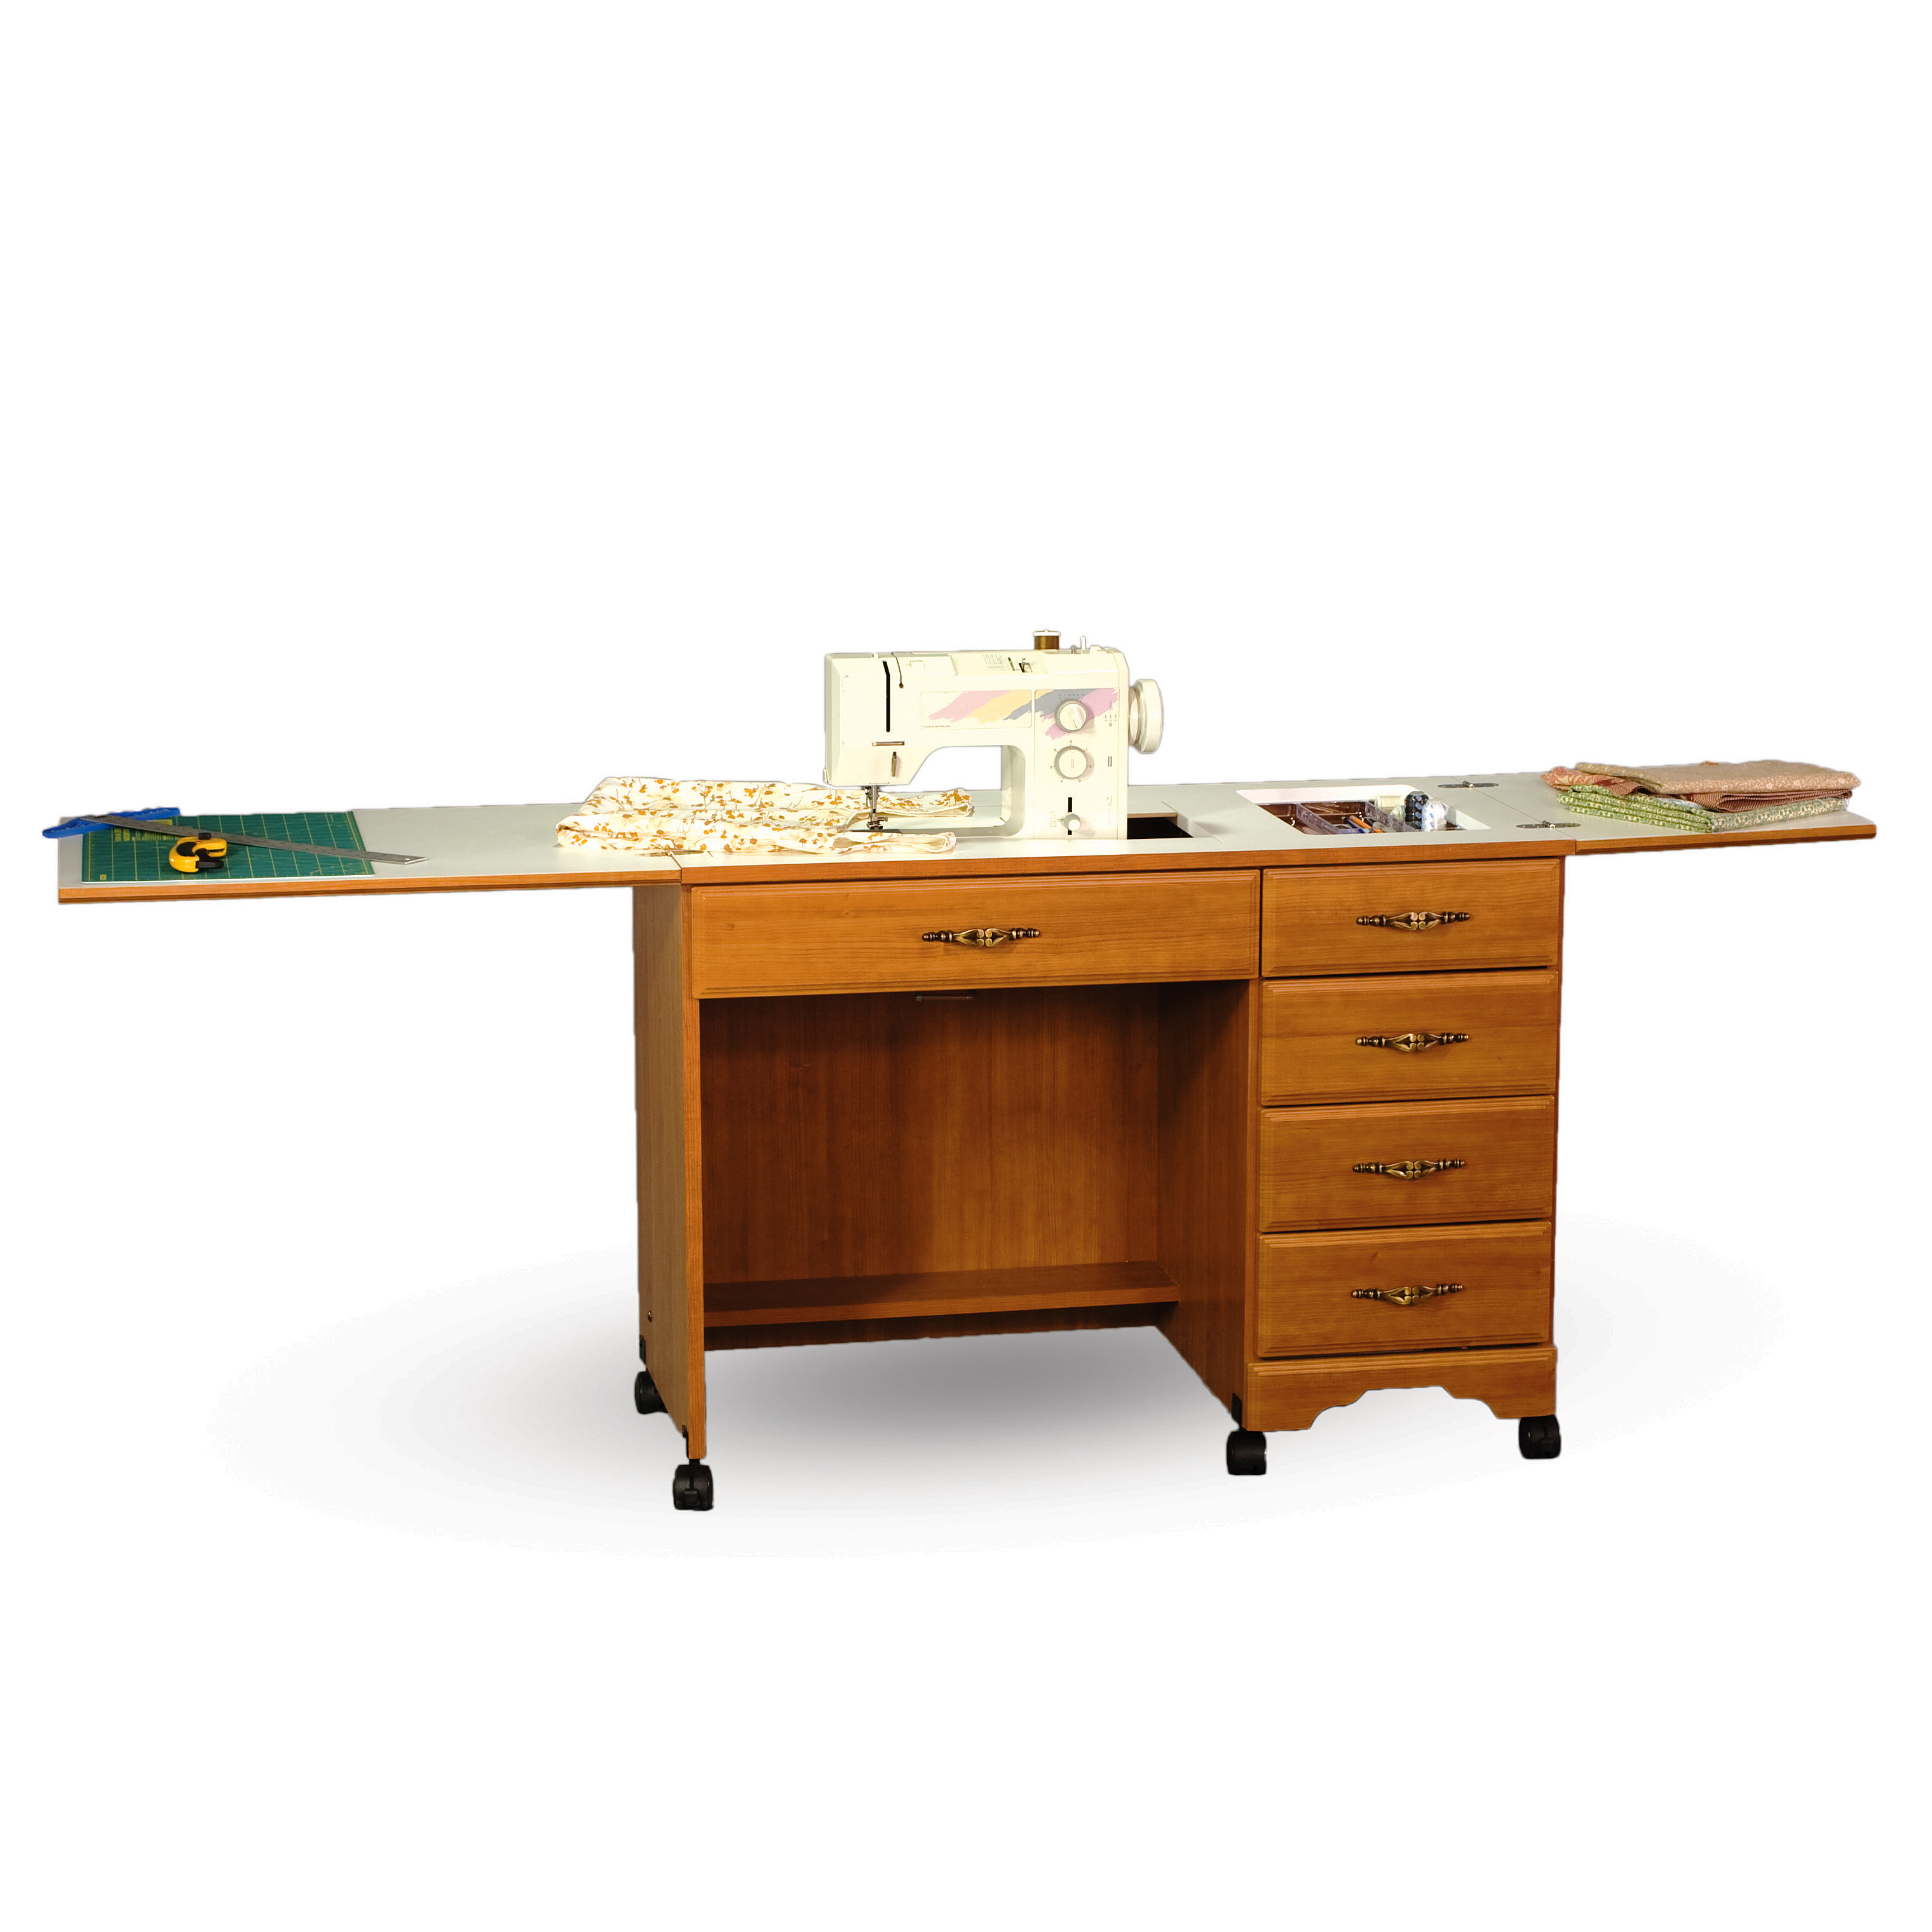 Sylvia Sewing Cabinets Fashion Sewing Cabinets Of America 3400 Sewing Desk